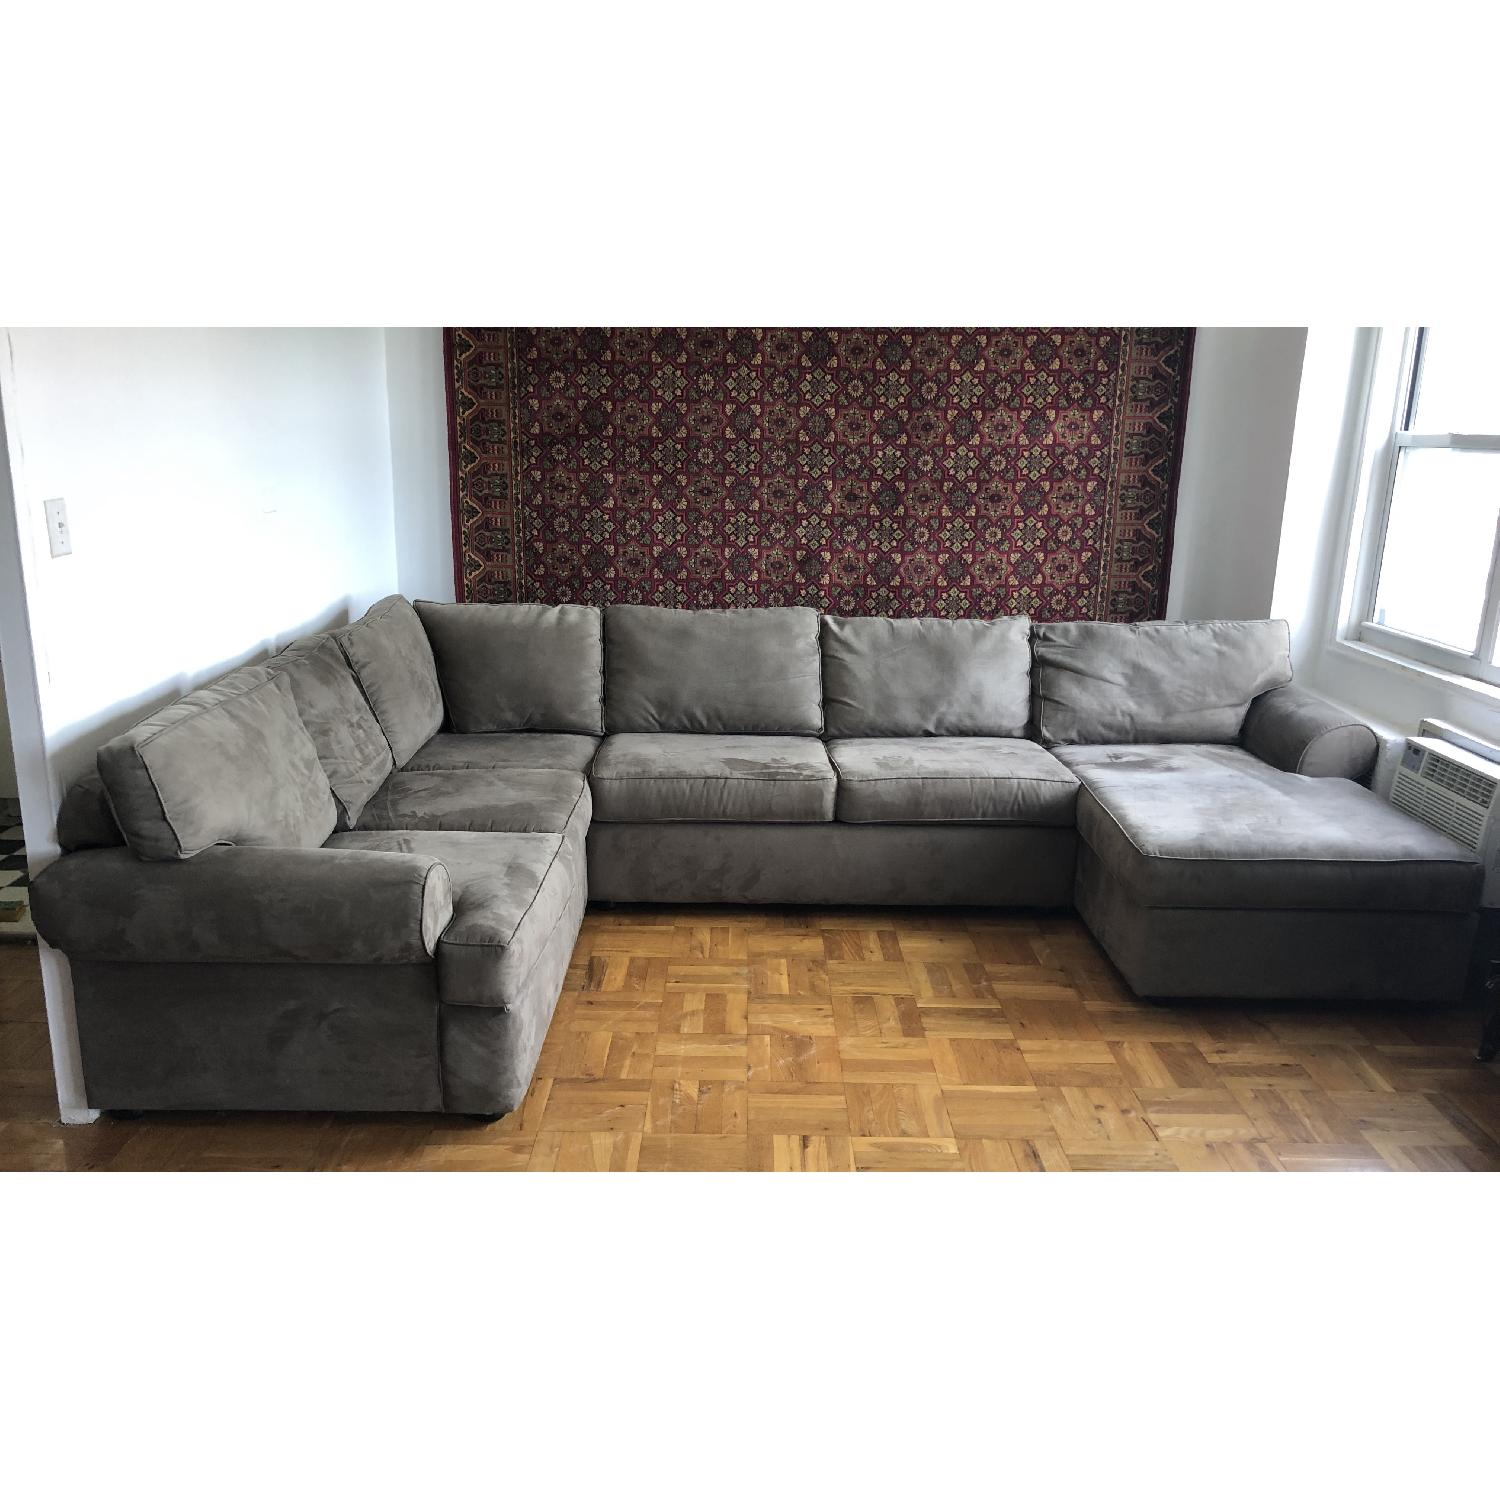 Jennifer Convertible Milfor 3-Piece Sectional Sofa - image-1